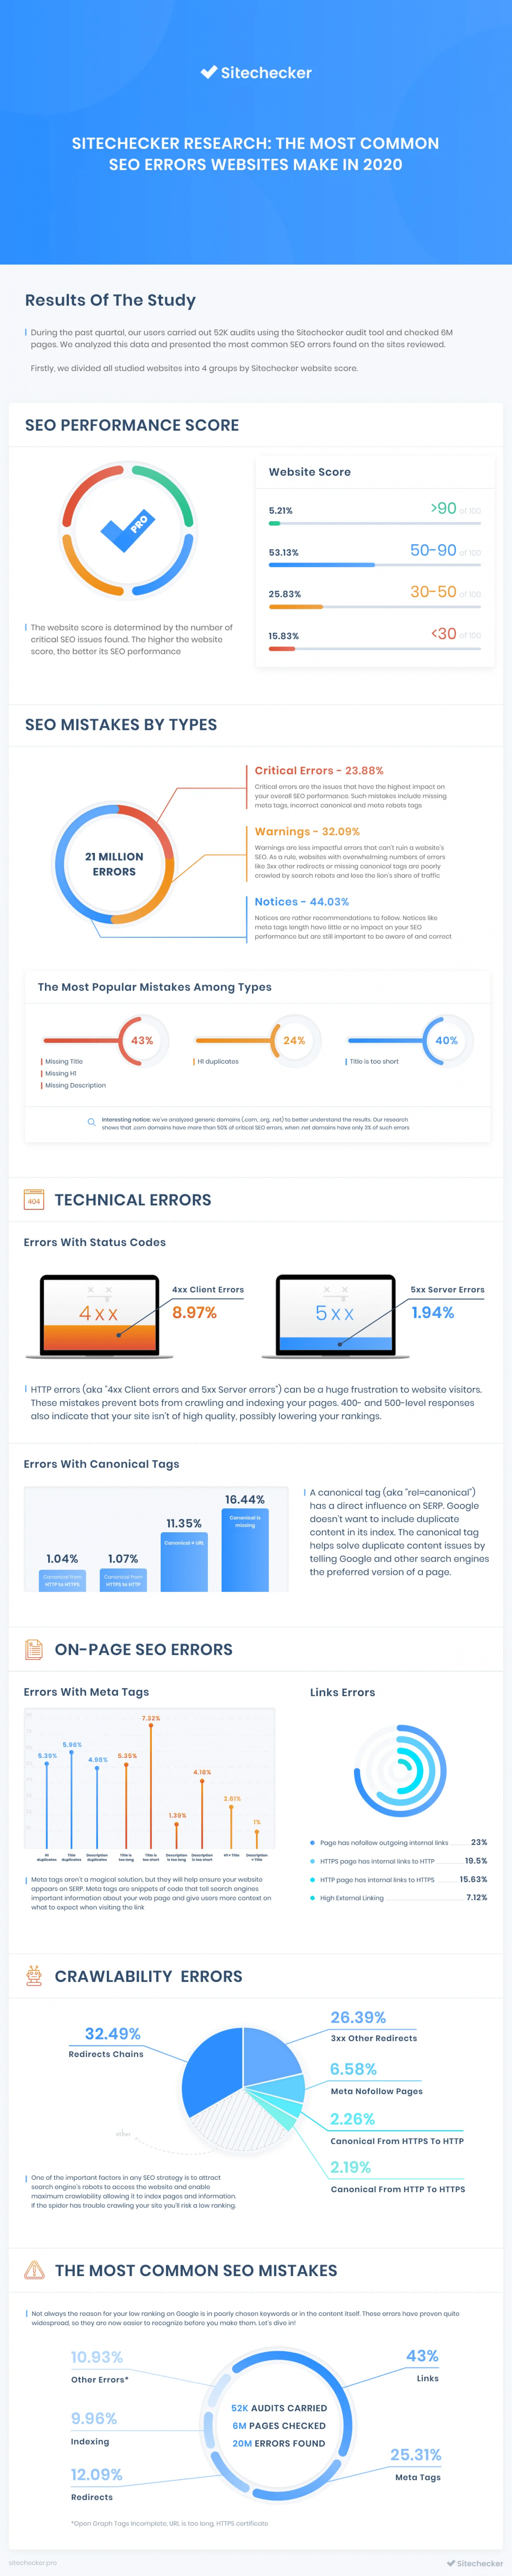 SiteChecker Research: the Most Common SEO Errors Websites Make in 2020 Infographic